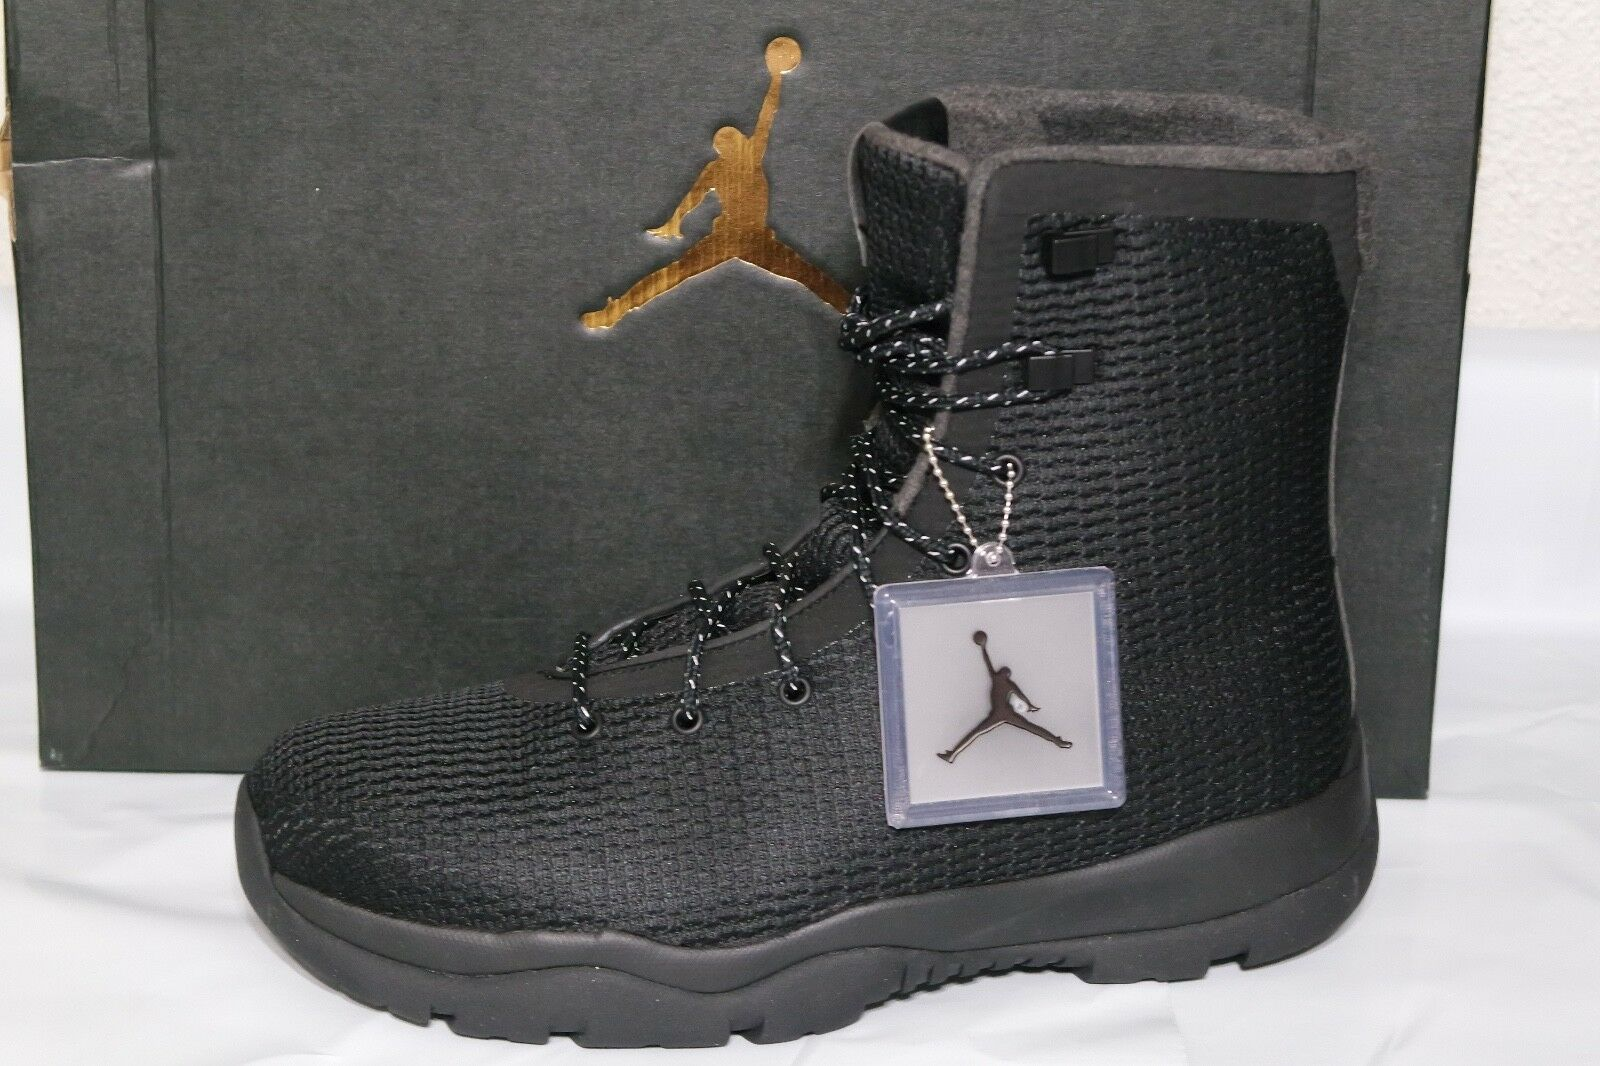 NIKE JORDAN FUTURE MENS BOOT, WATERPROOF UPPER, SIZE 8 BLK DARK GREY, 854554 002